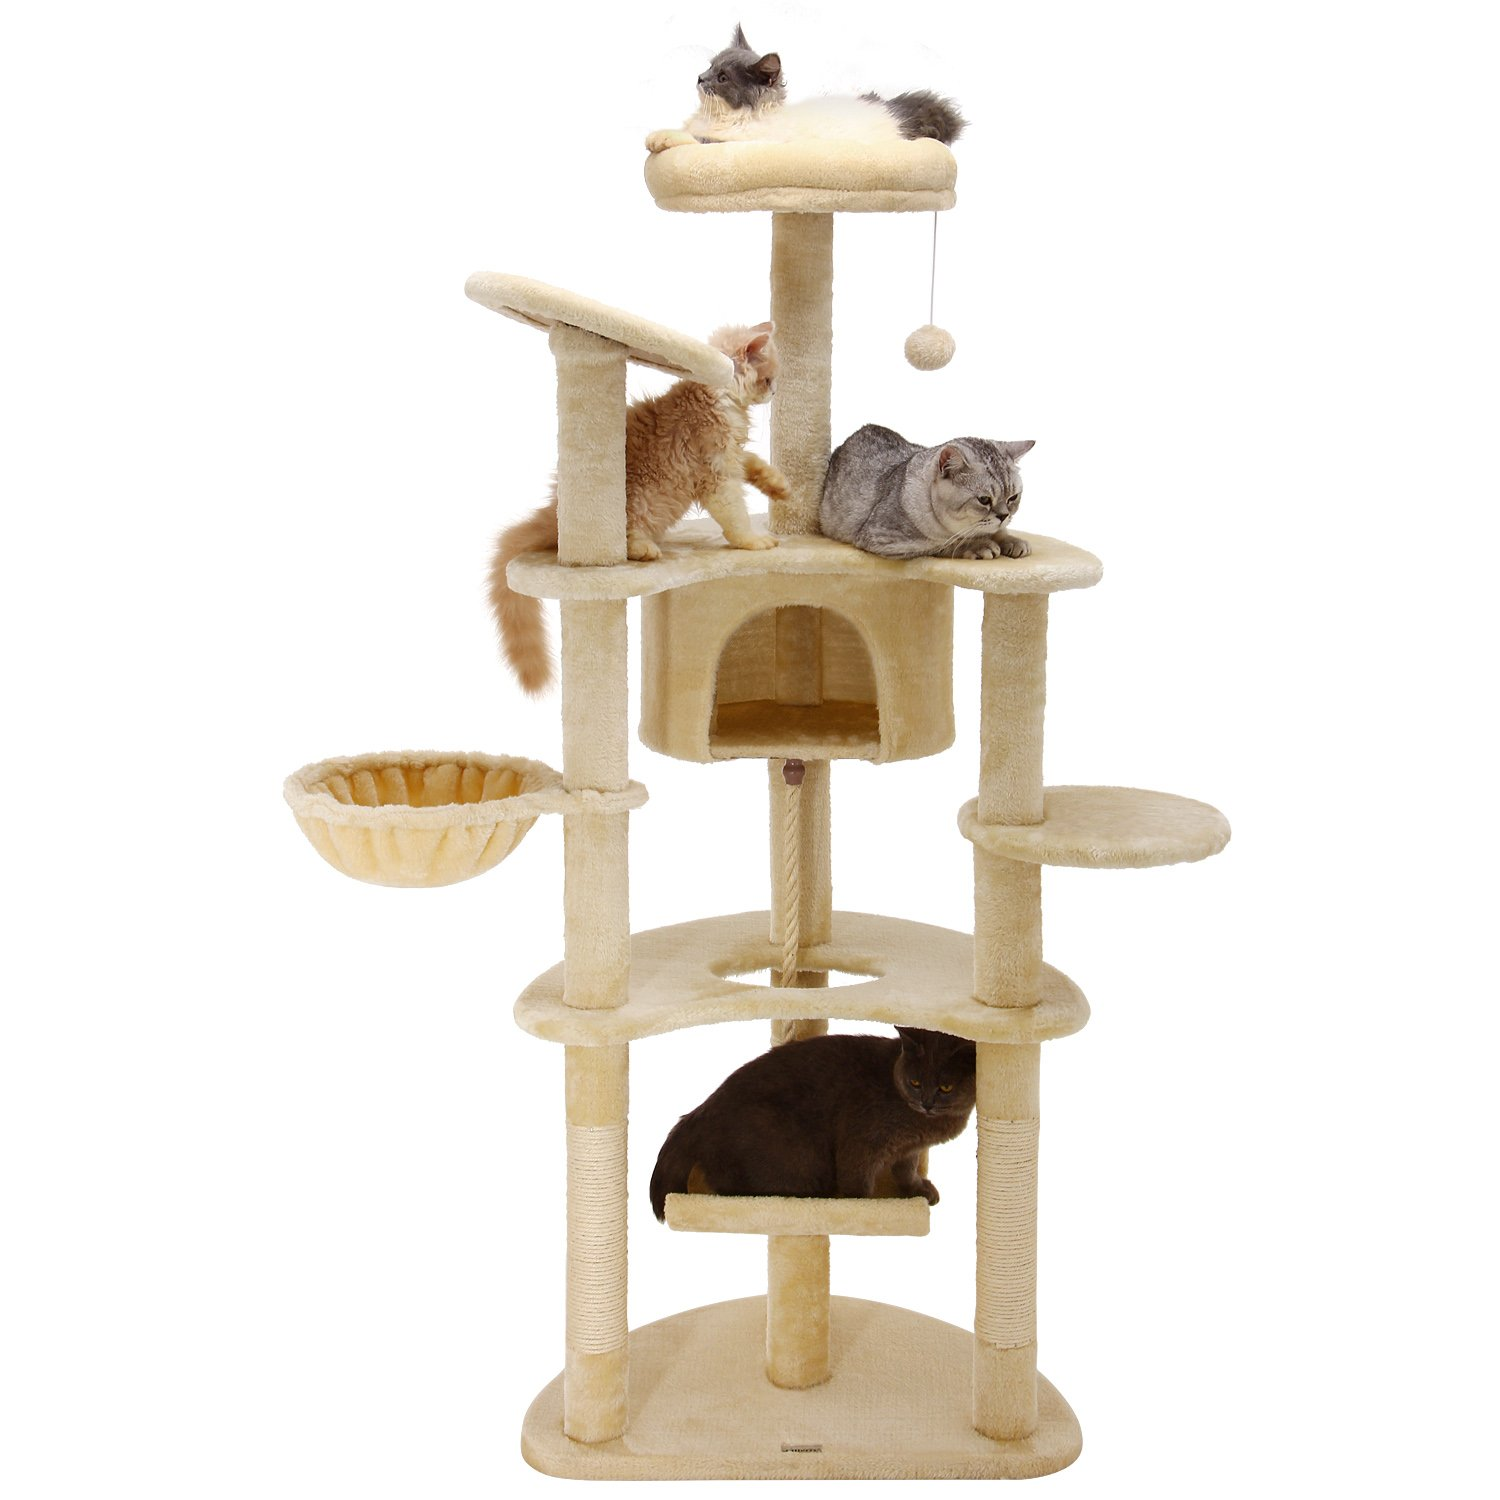 Ollieroo 60'' H Cat Tree Furniture Tower Climbling Activity Tree Scratcher Play House Condo Hammock with Scratching Post and Toys Beige